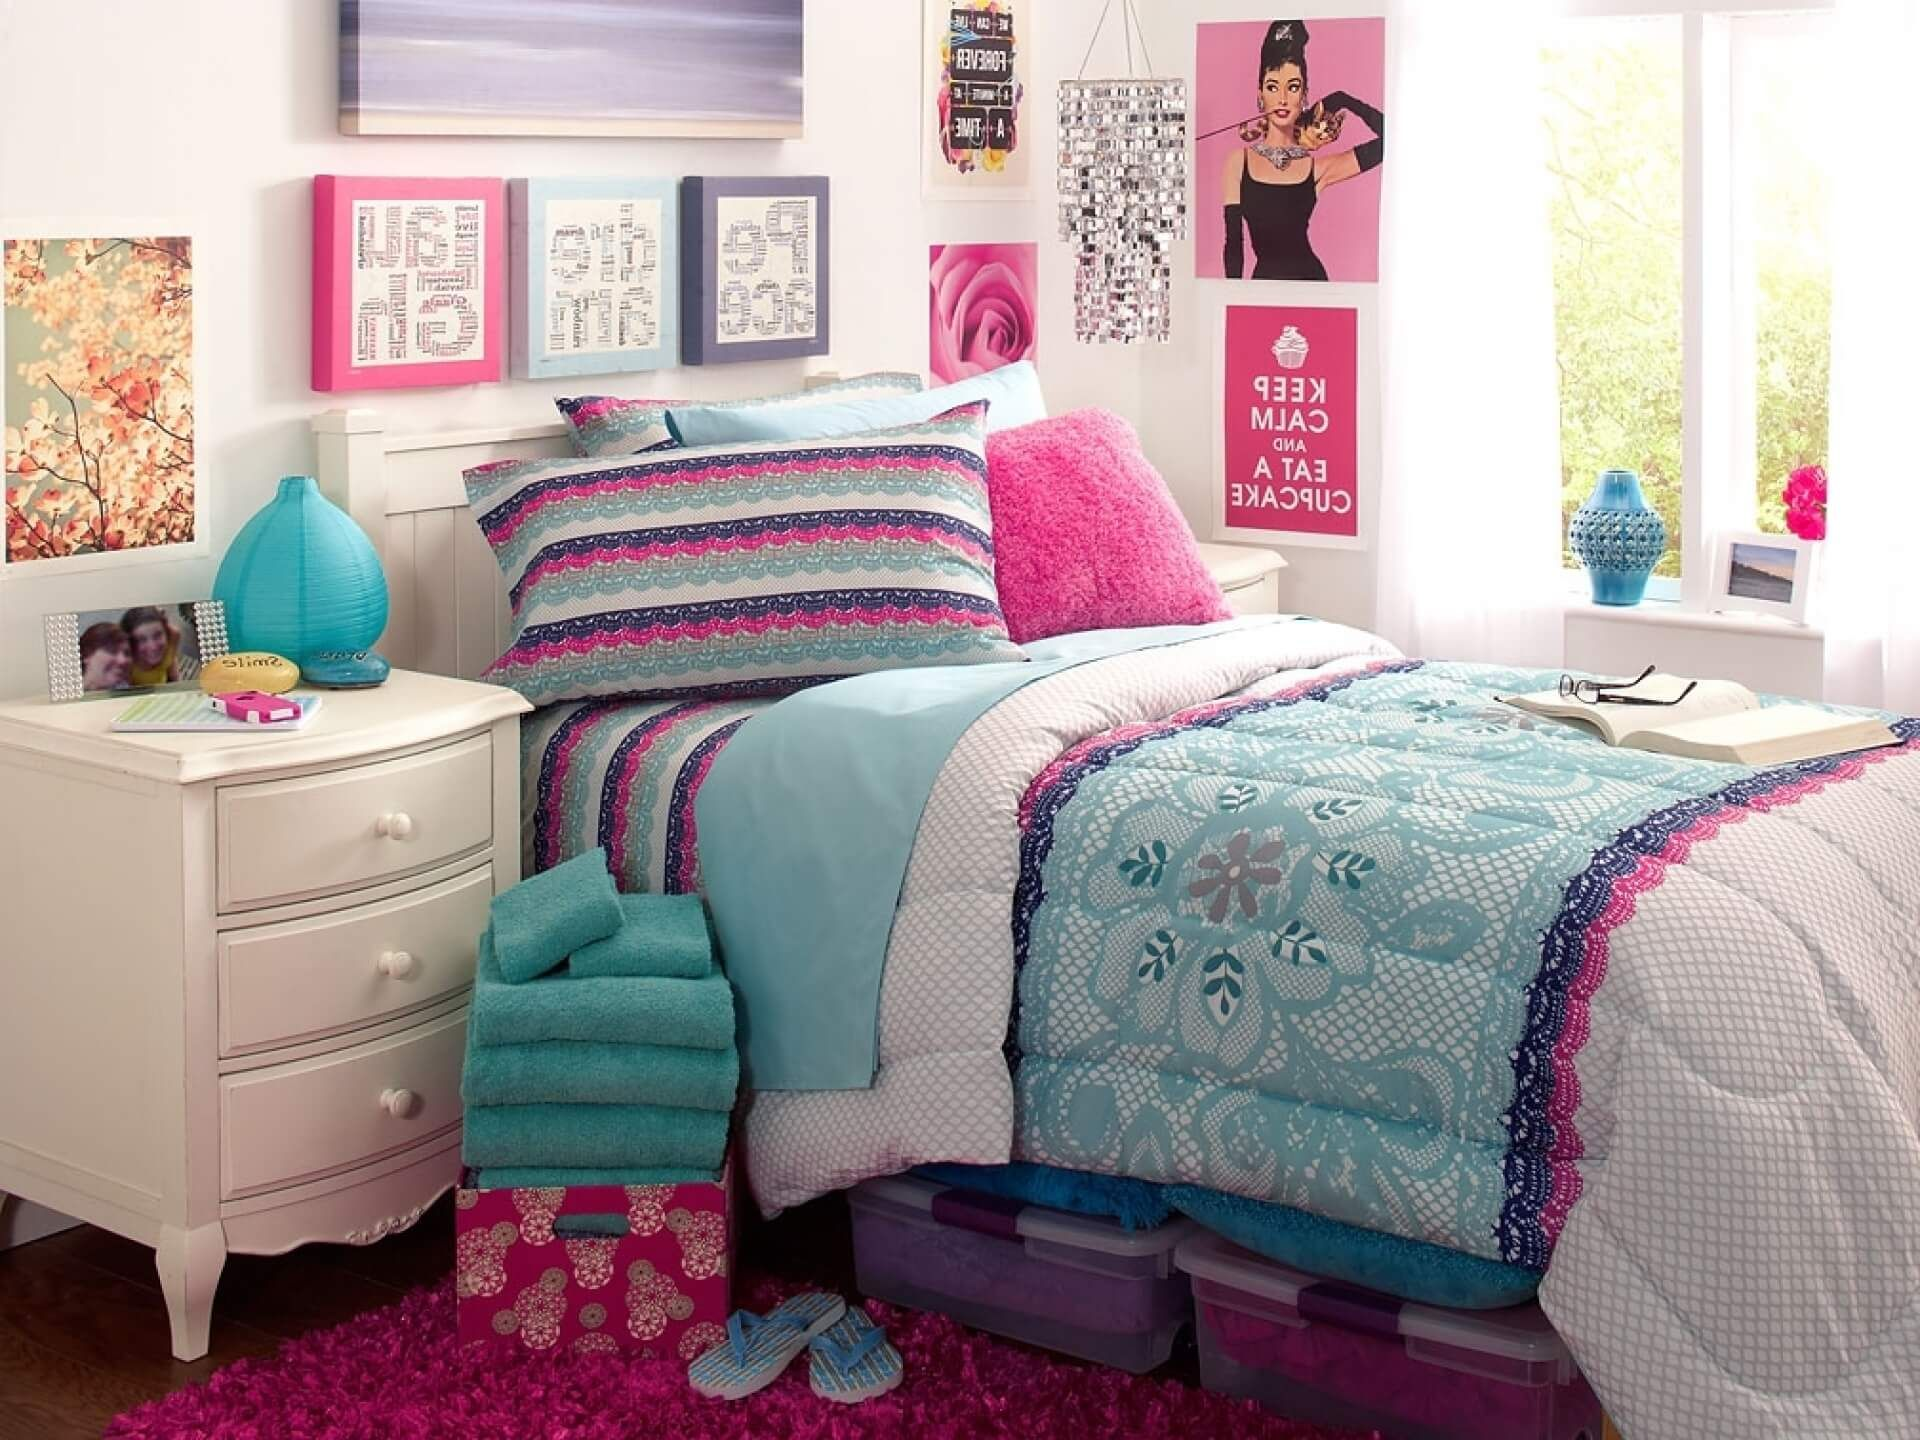 like-most-teen-rooms-the-girl-hardcore-free